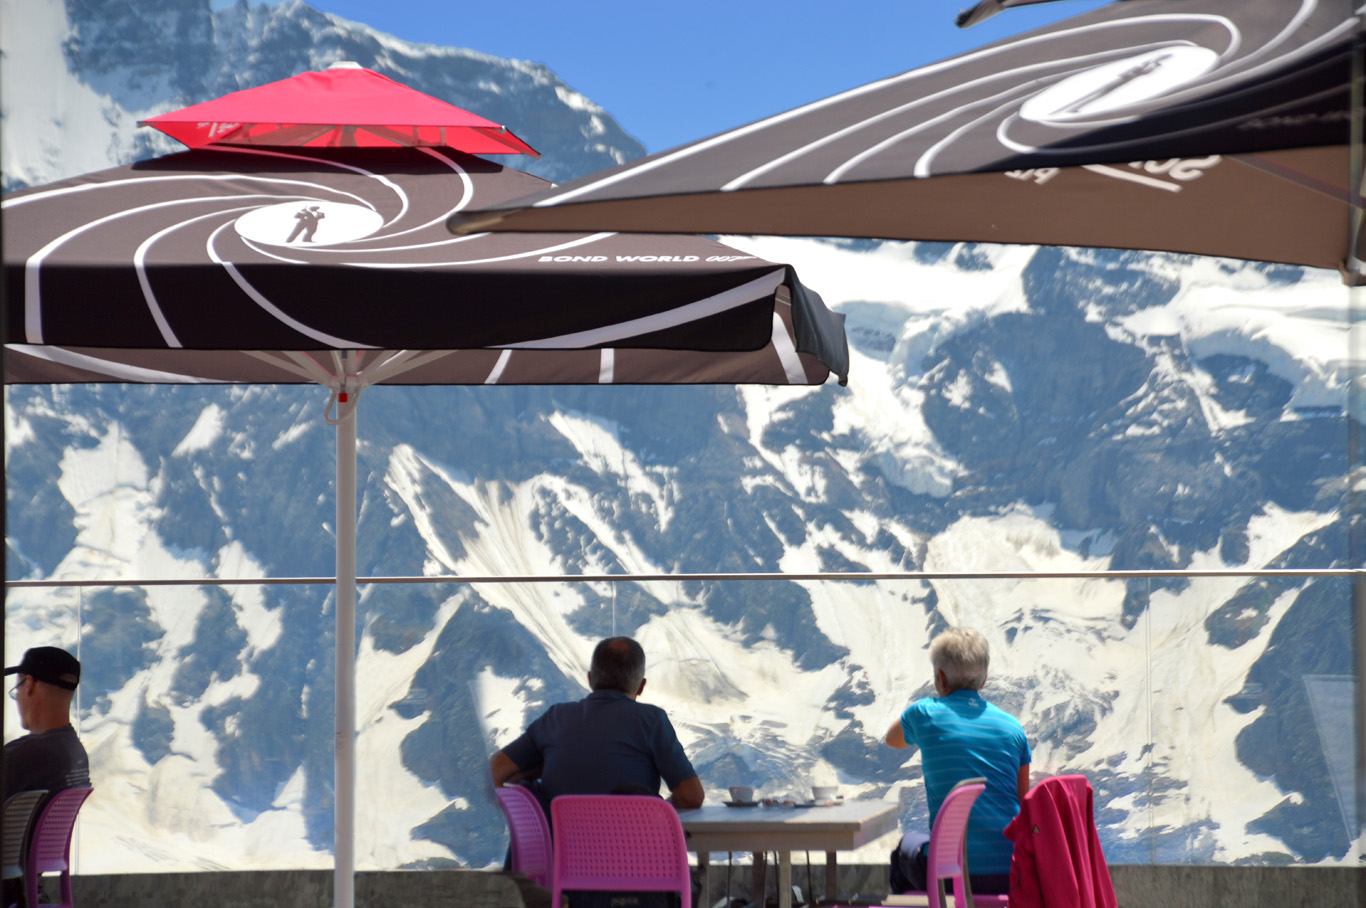 A view on the way to the rotating restaurant at Piz Gloria